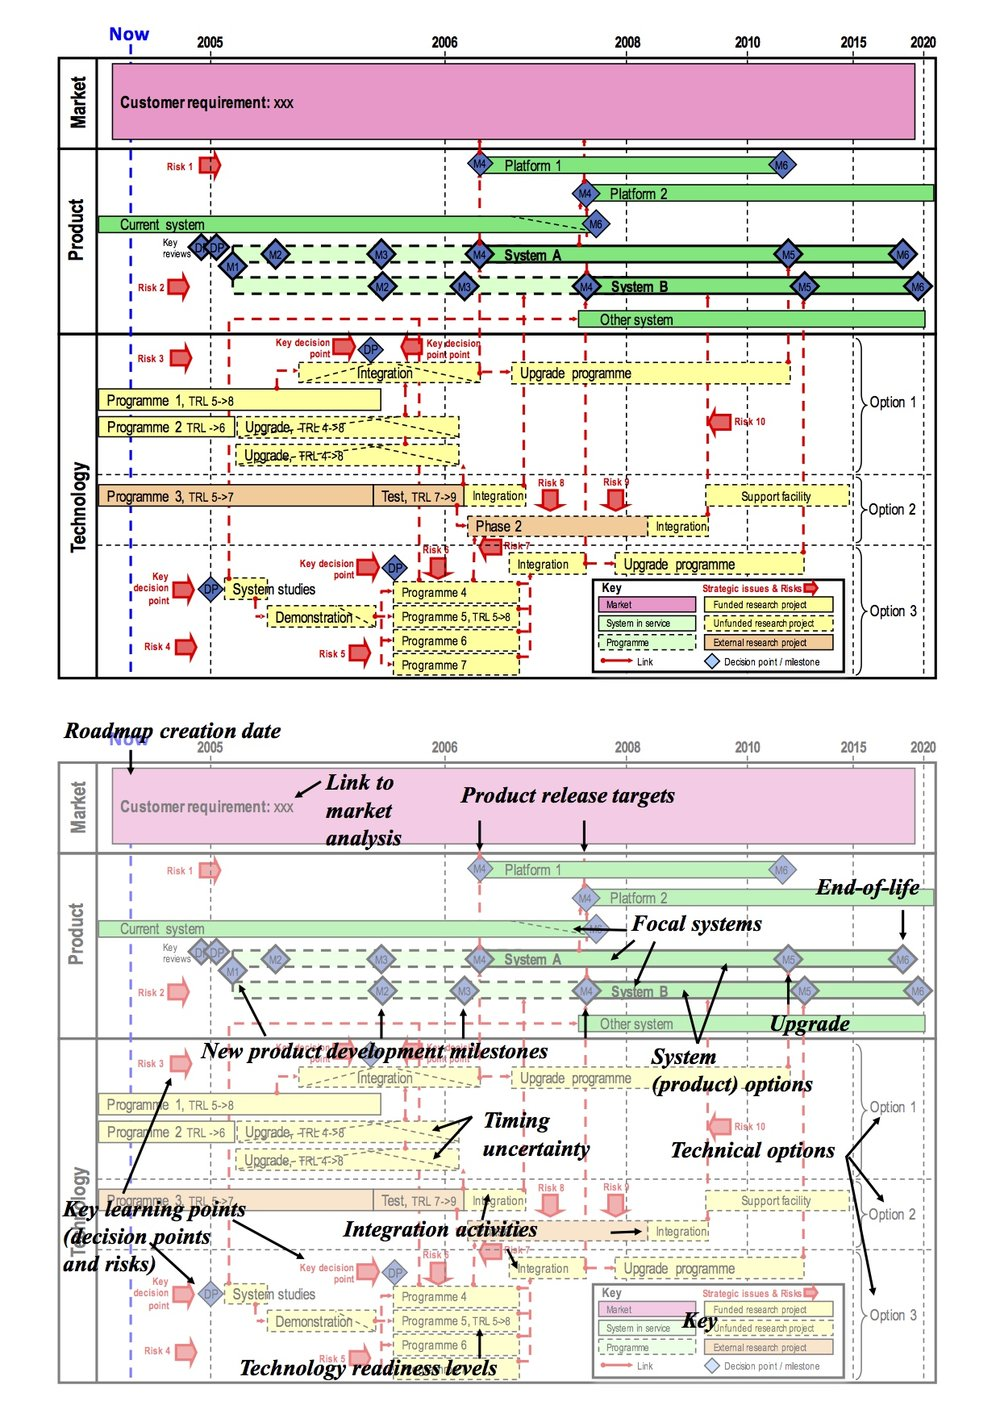 Full-life aerospace systems roadmap (Type 1e), showing technology and product options for a new system, with roadmap design features annotated. Key content has edited for confidentiality reasons.